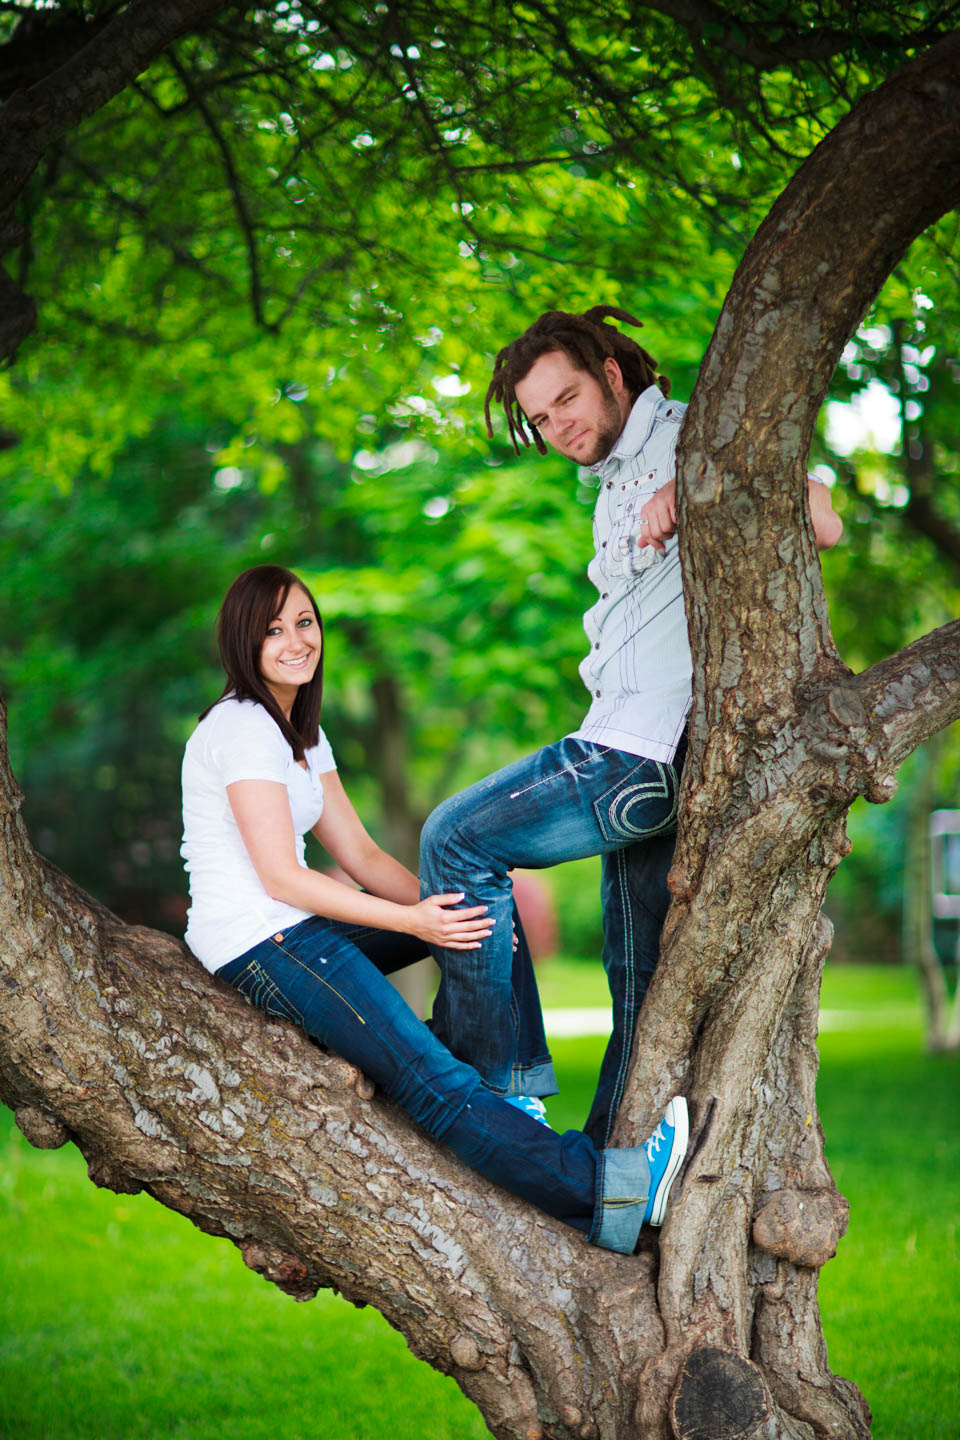 Climbing a tree for engagement photos